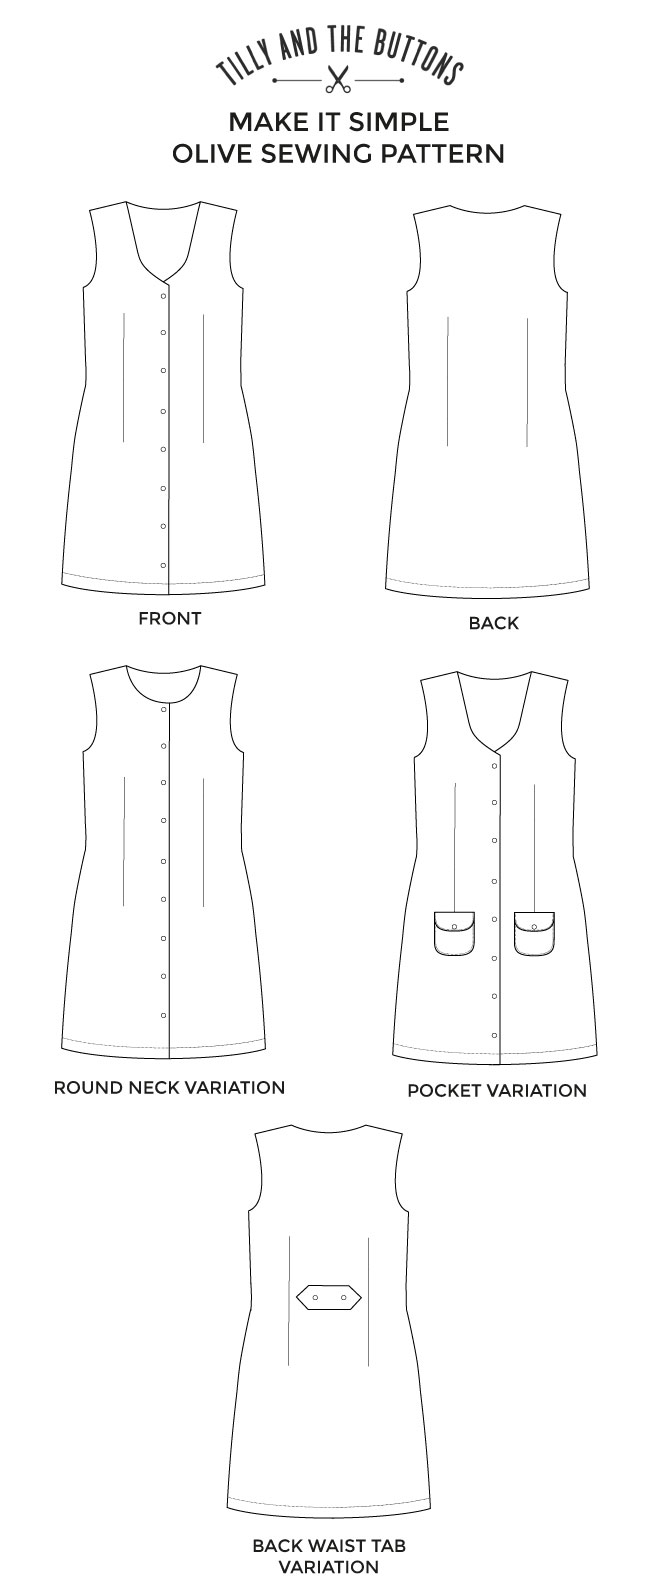 Olive pinafore sewing pattern - Make It Simple - Tilly and the Buttons